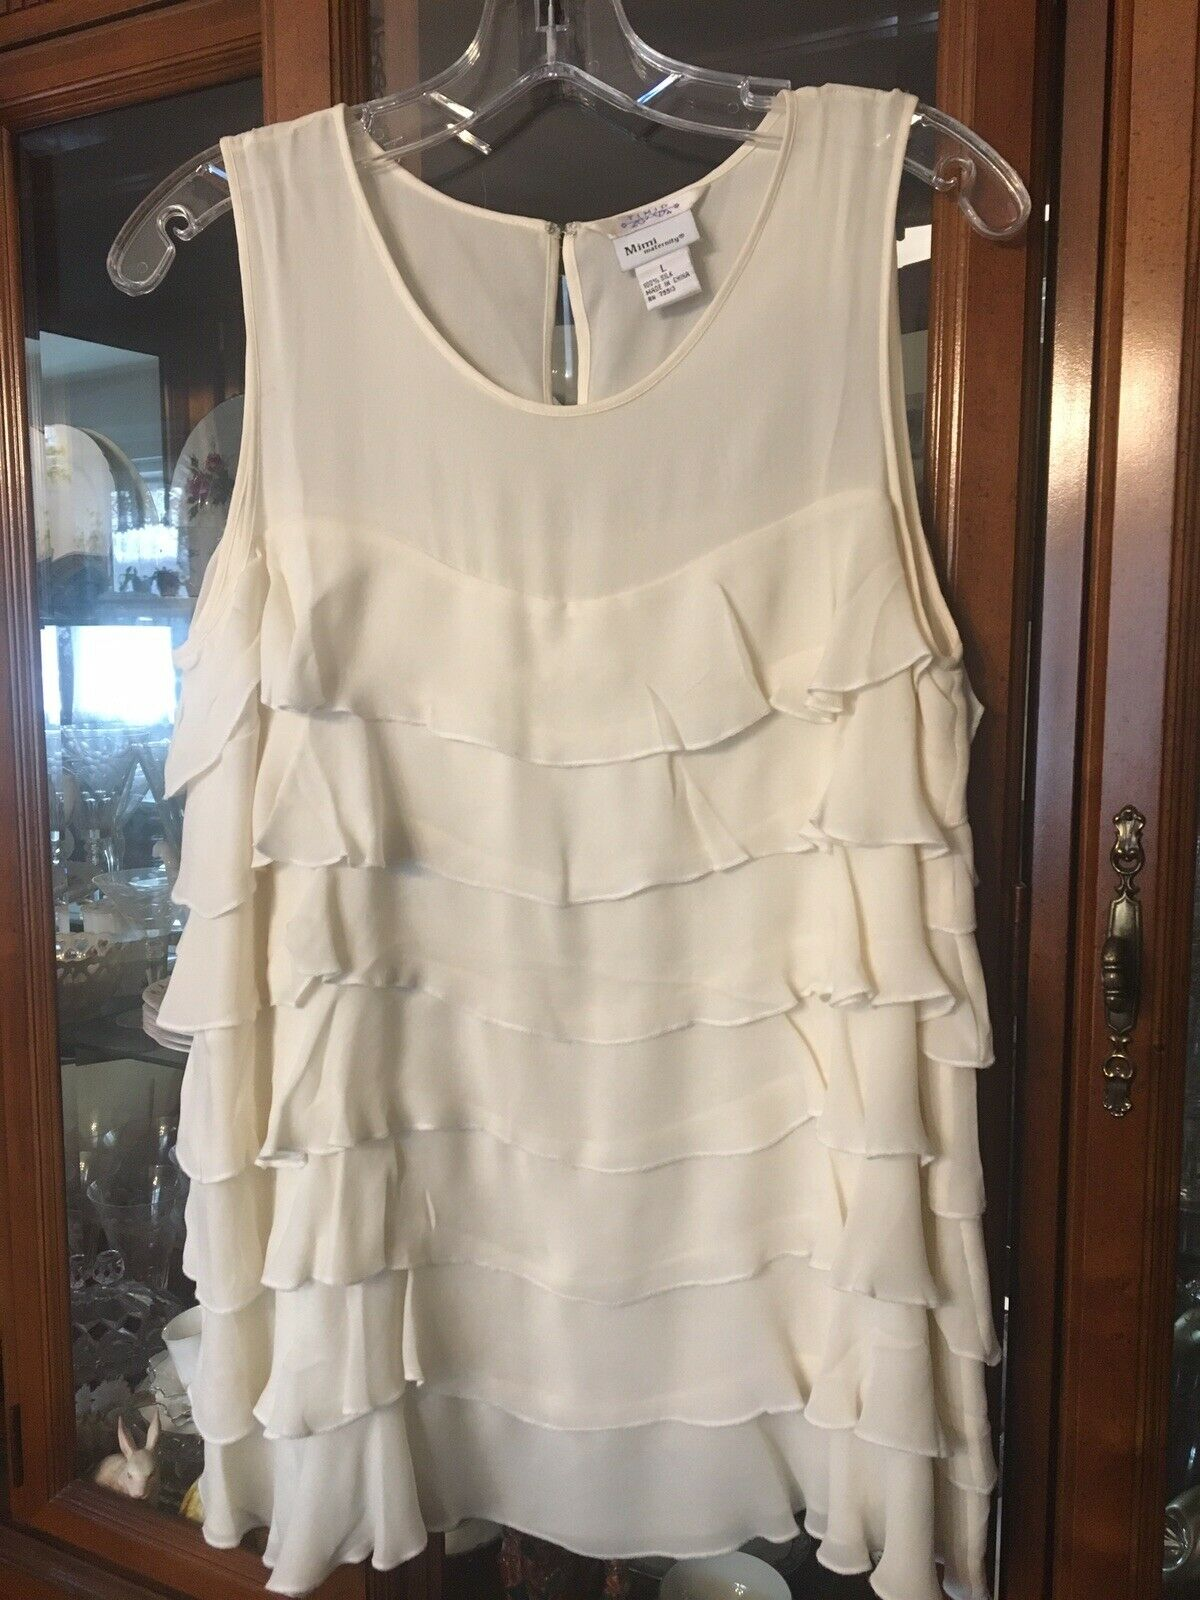 128 SILK ruffled ivory top MIMI Maternity   A Pea In the Pod store NWOT LARGE